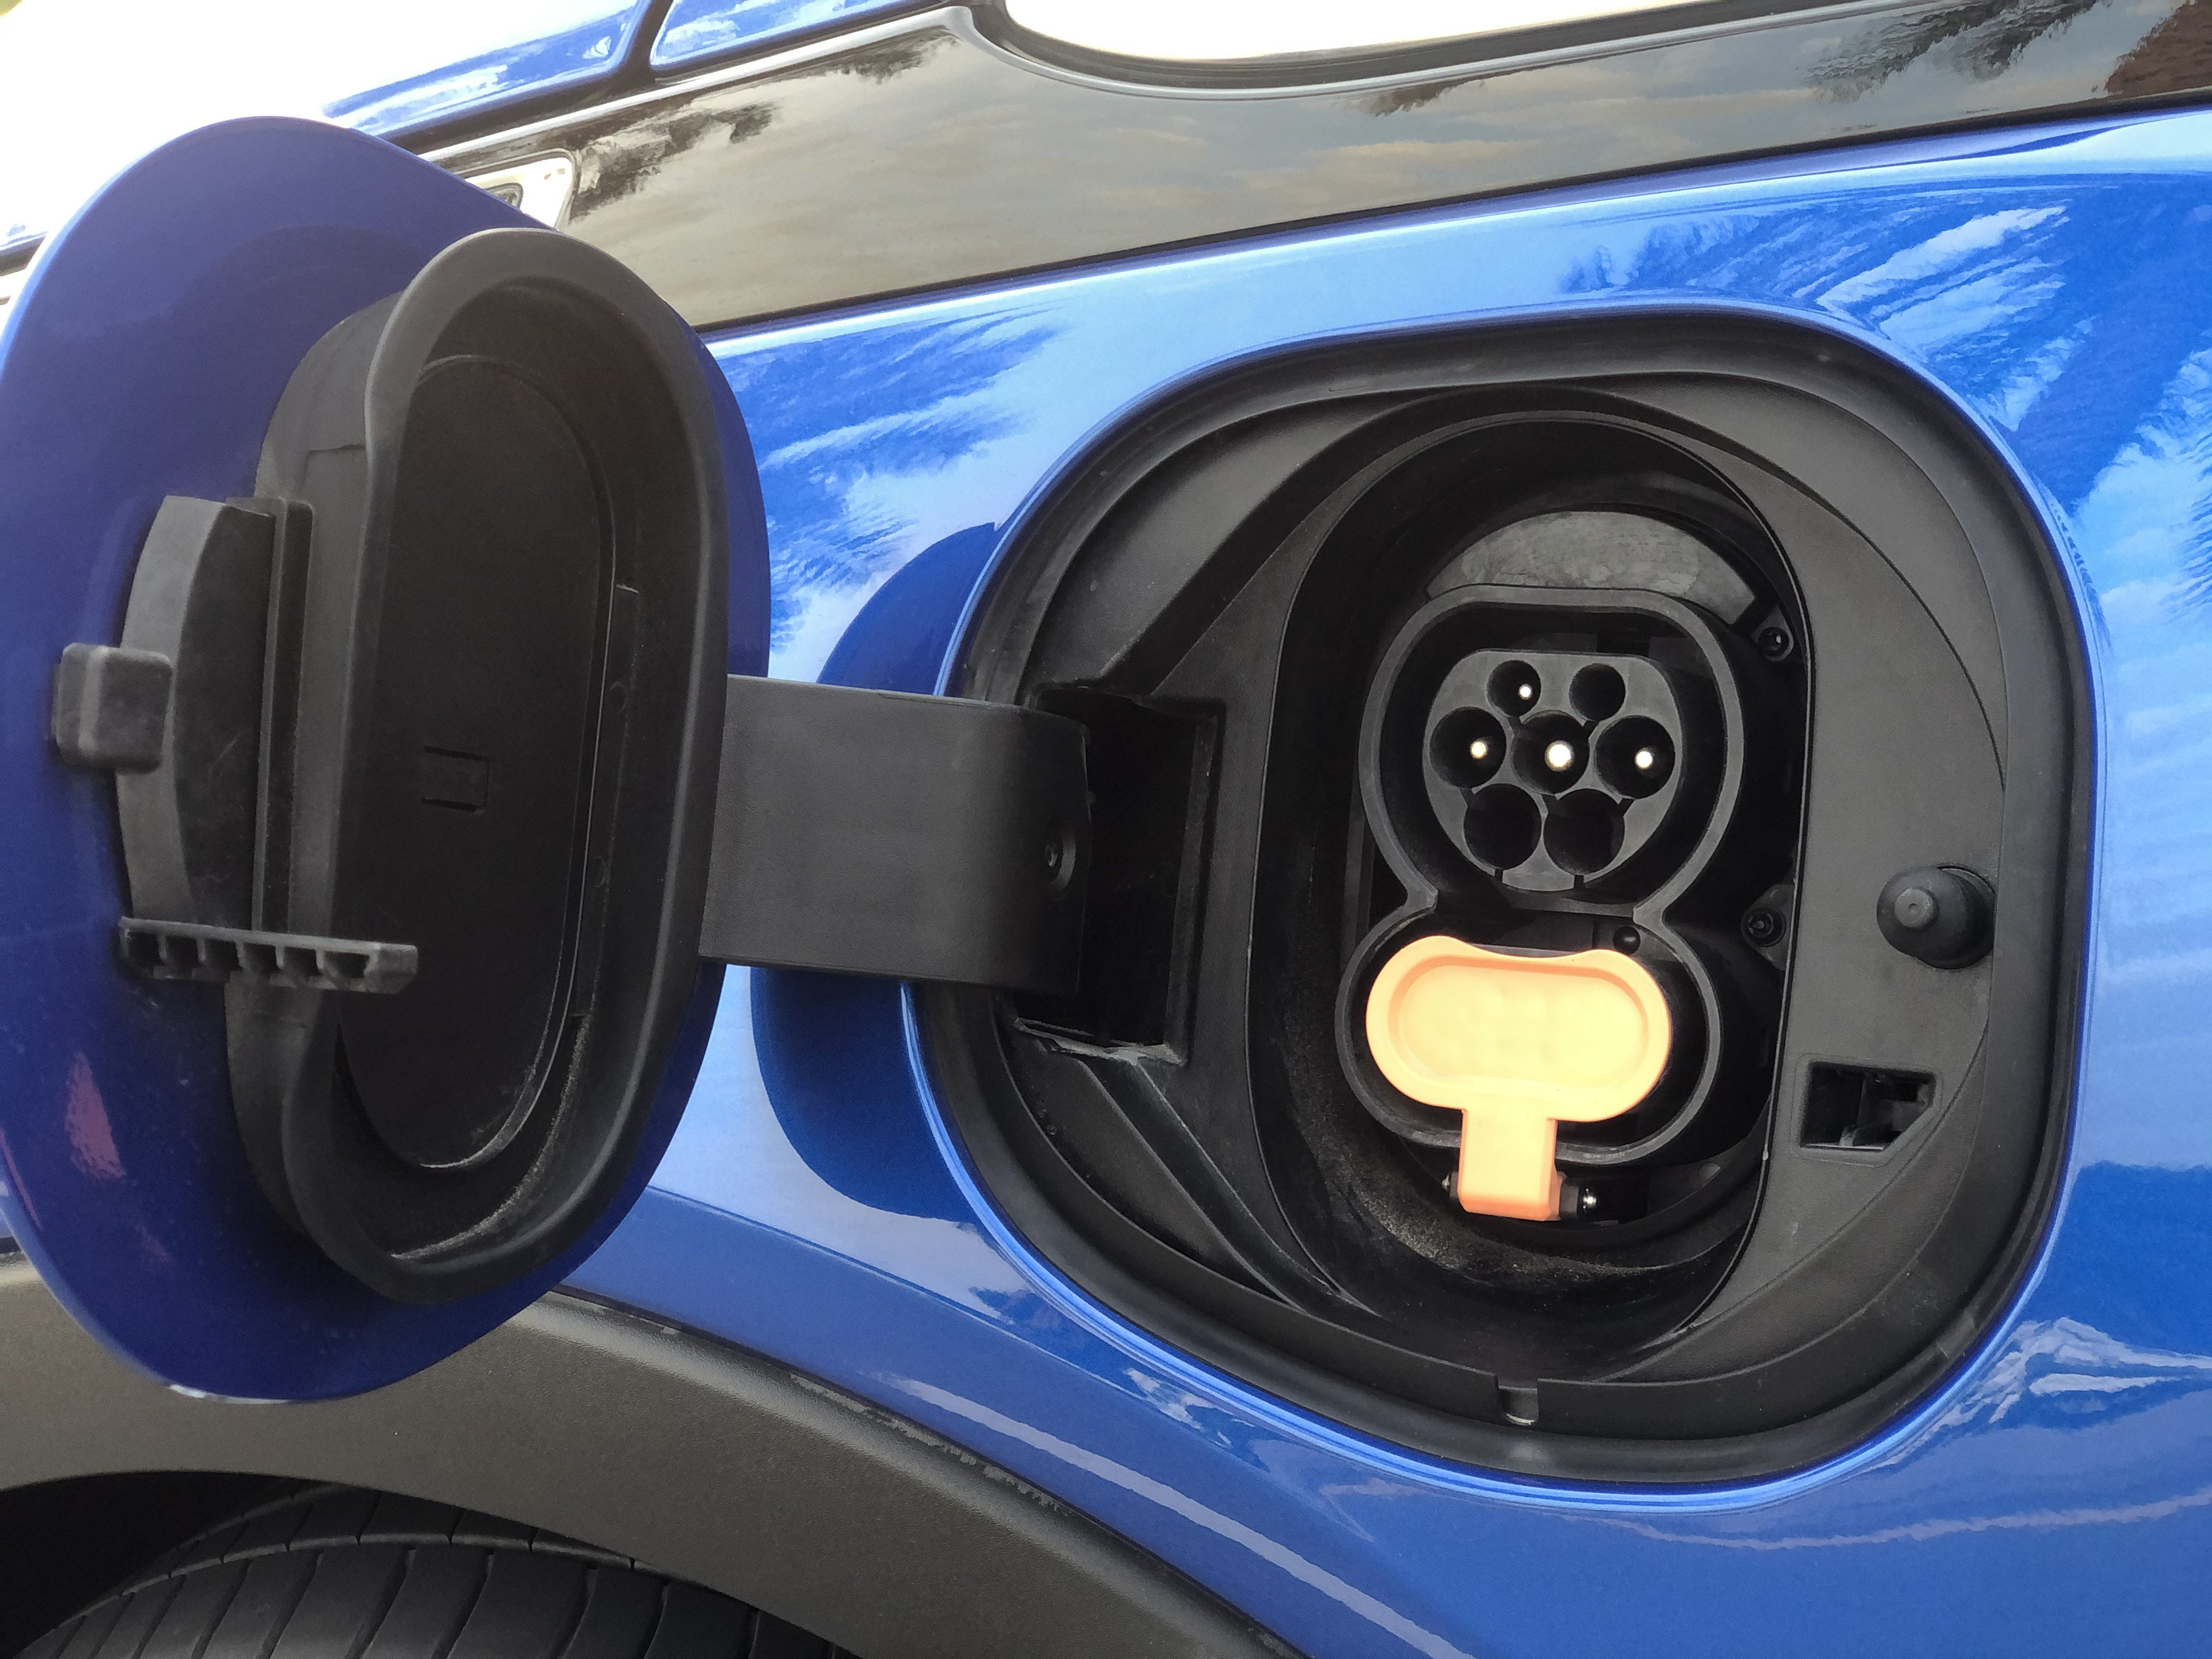 2019 CHEVROLET BOLT EV Charging port